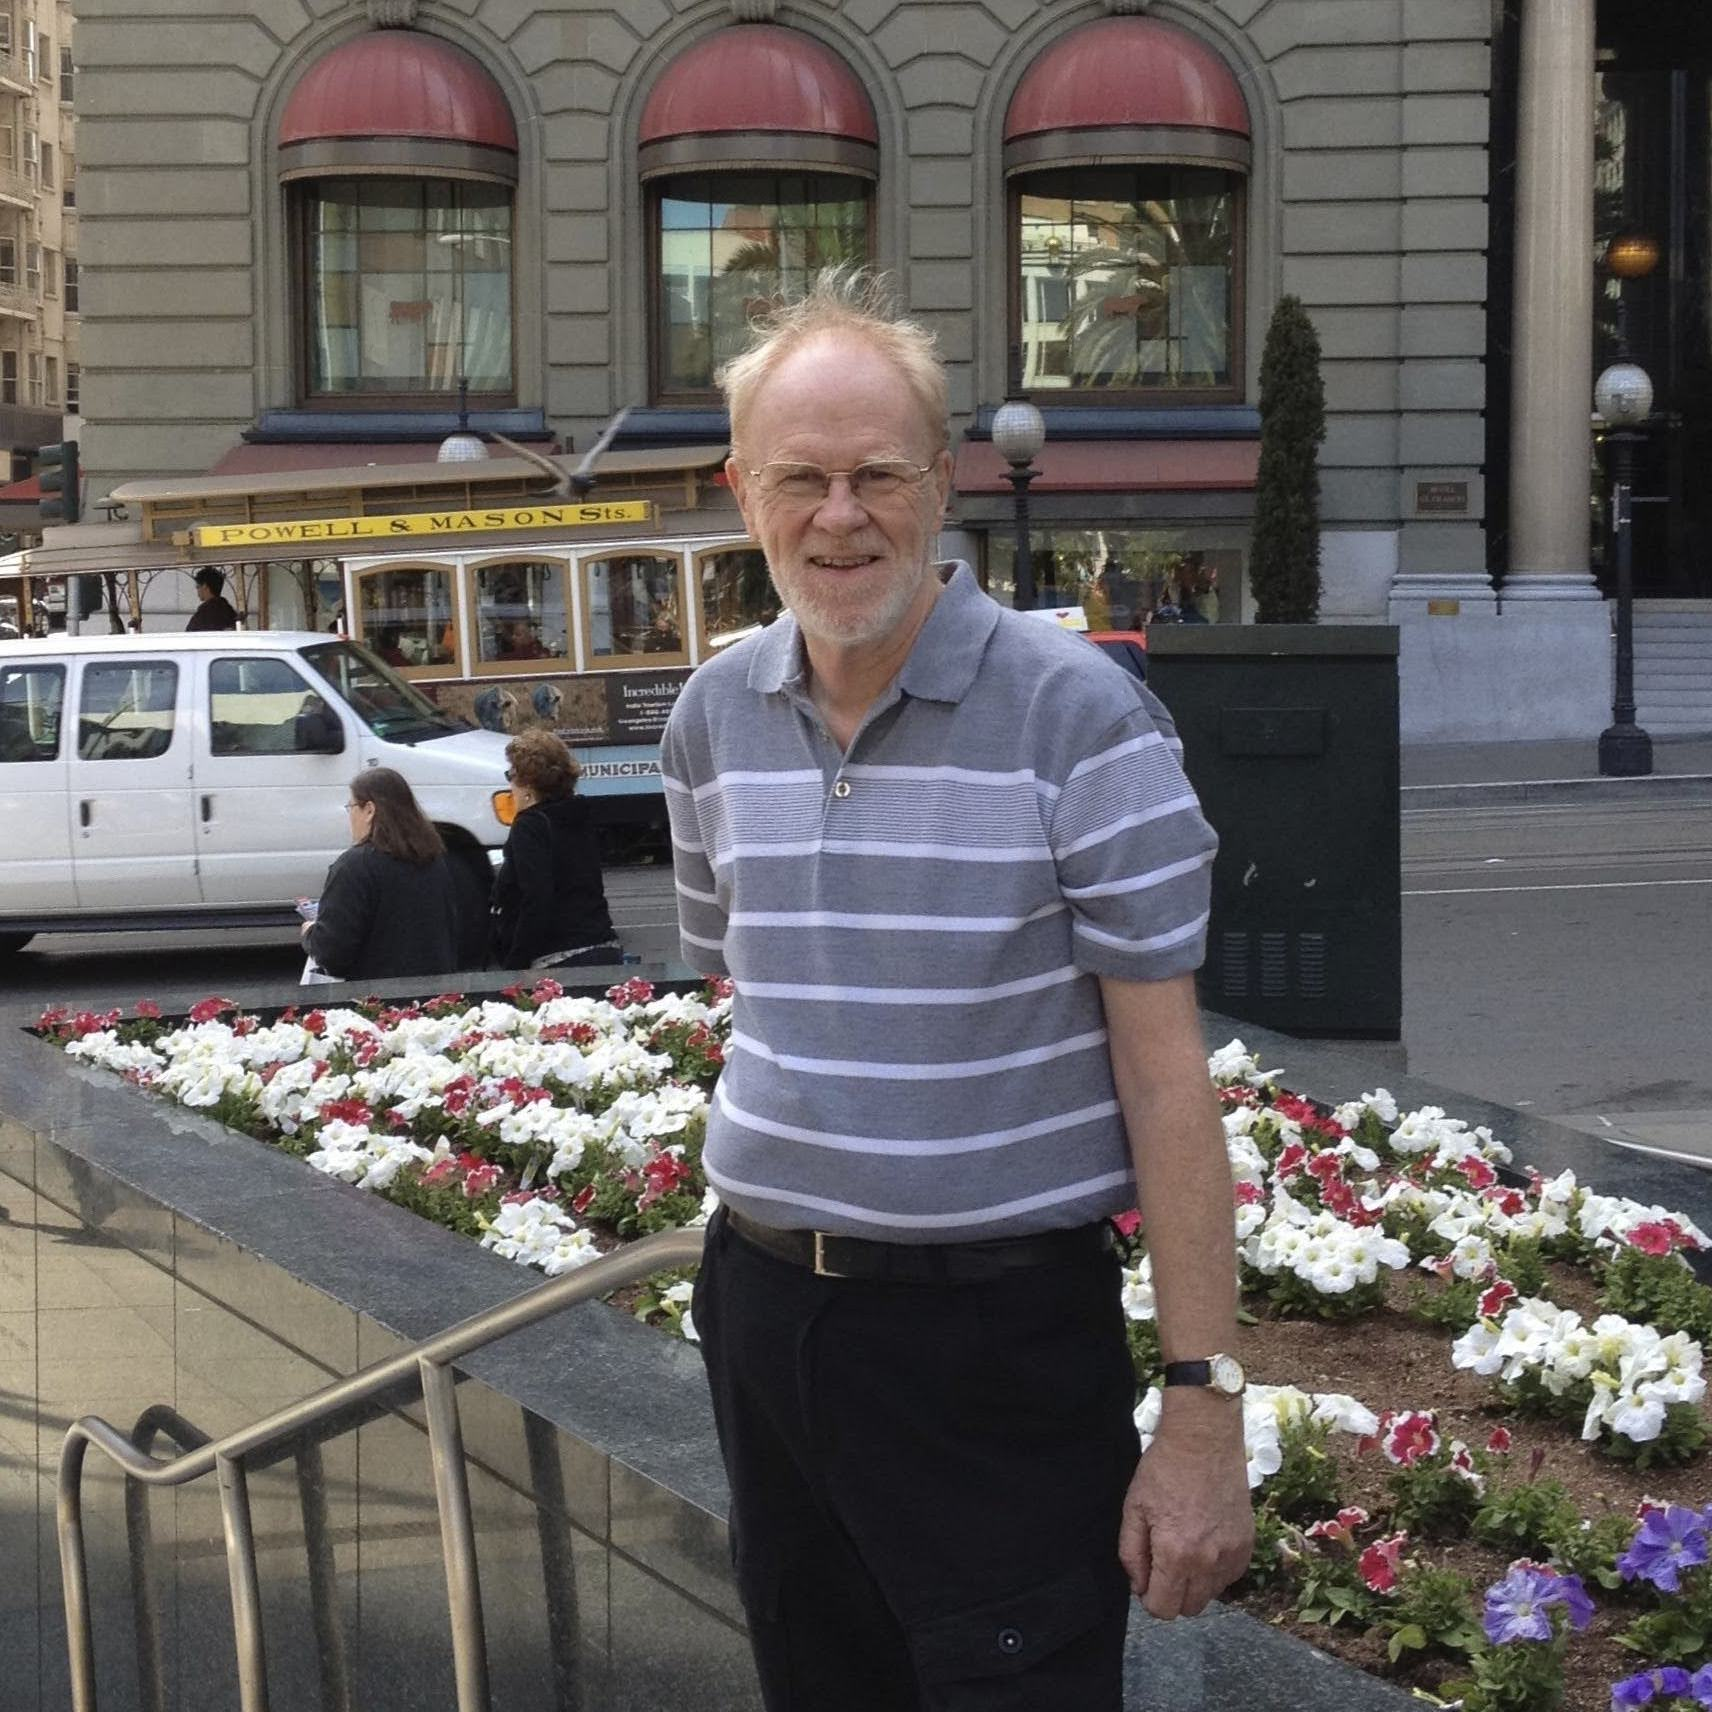 Dad in San Francisco